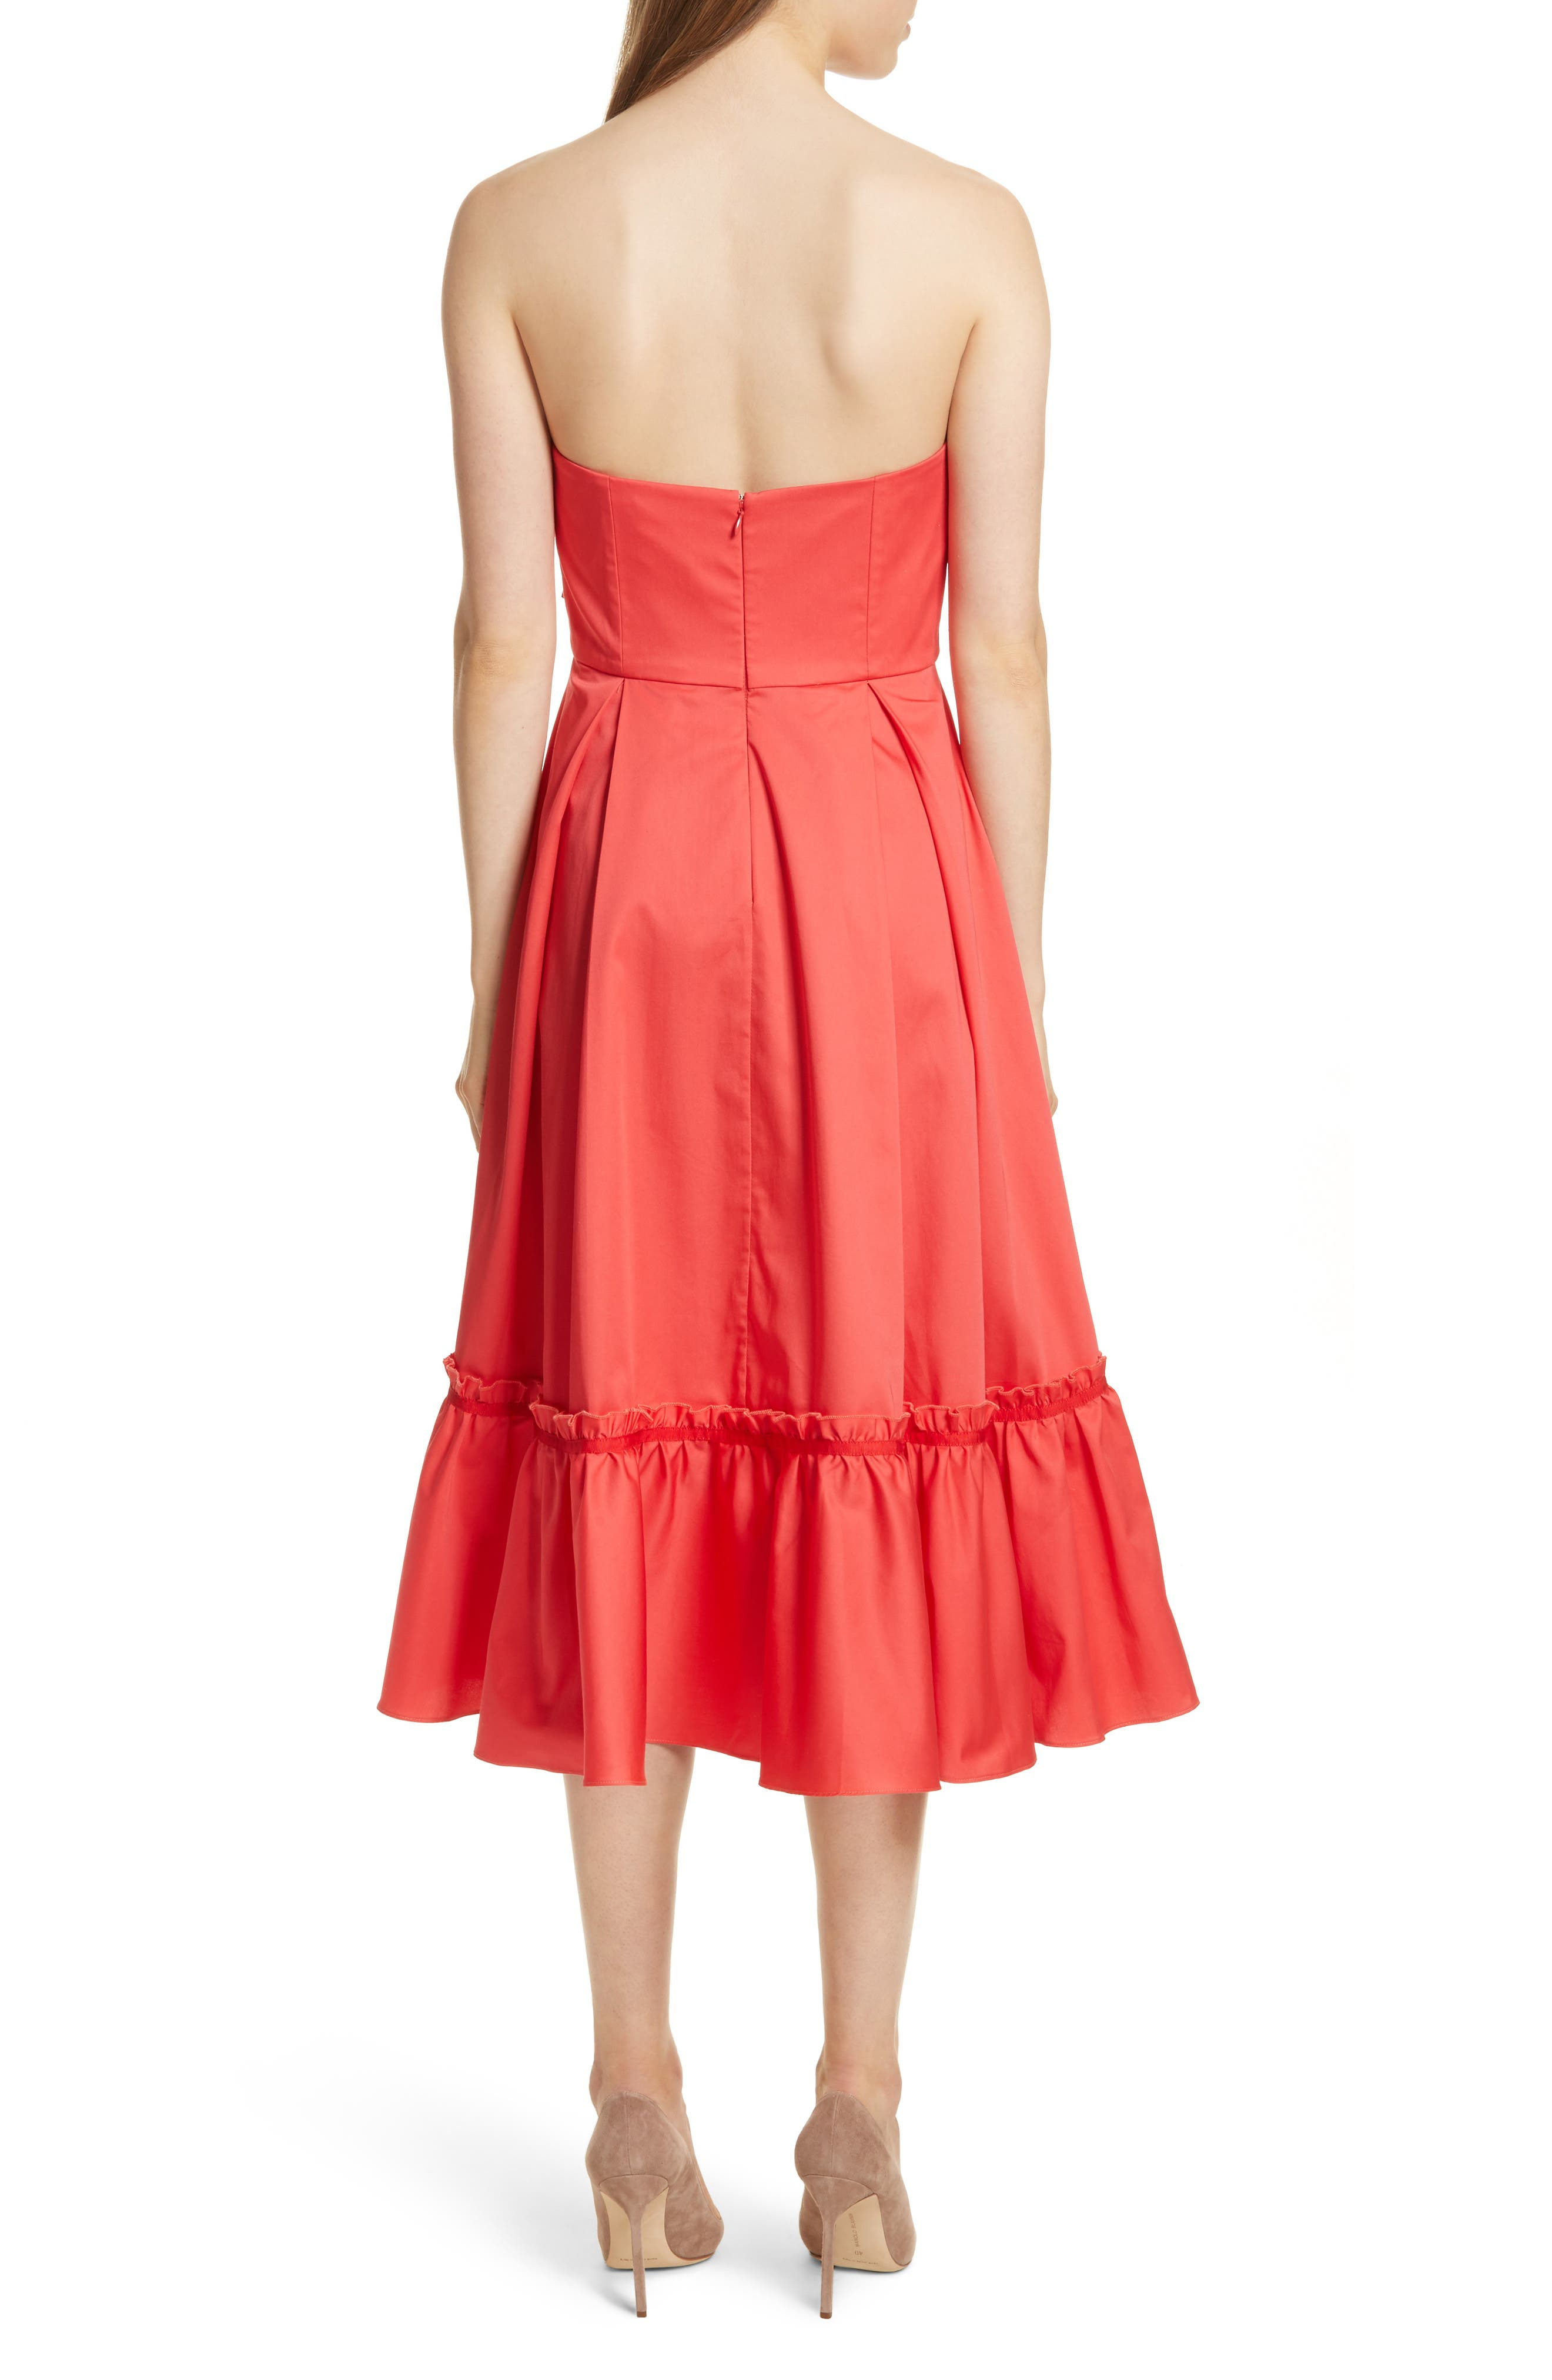 Prose & Poetry Harlow Ruffle Trim Strapless Dress,                             Alternate thumbnail 2, color,